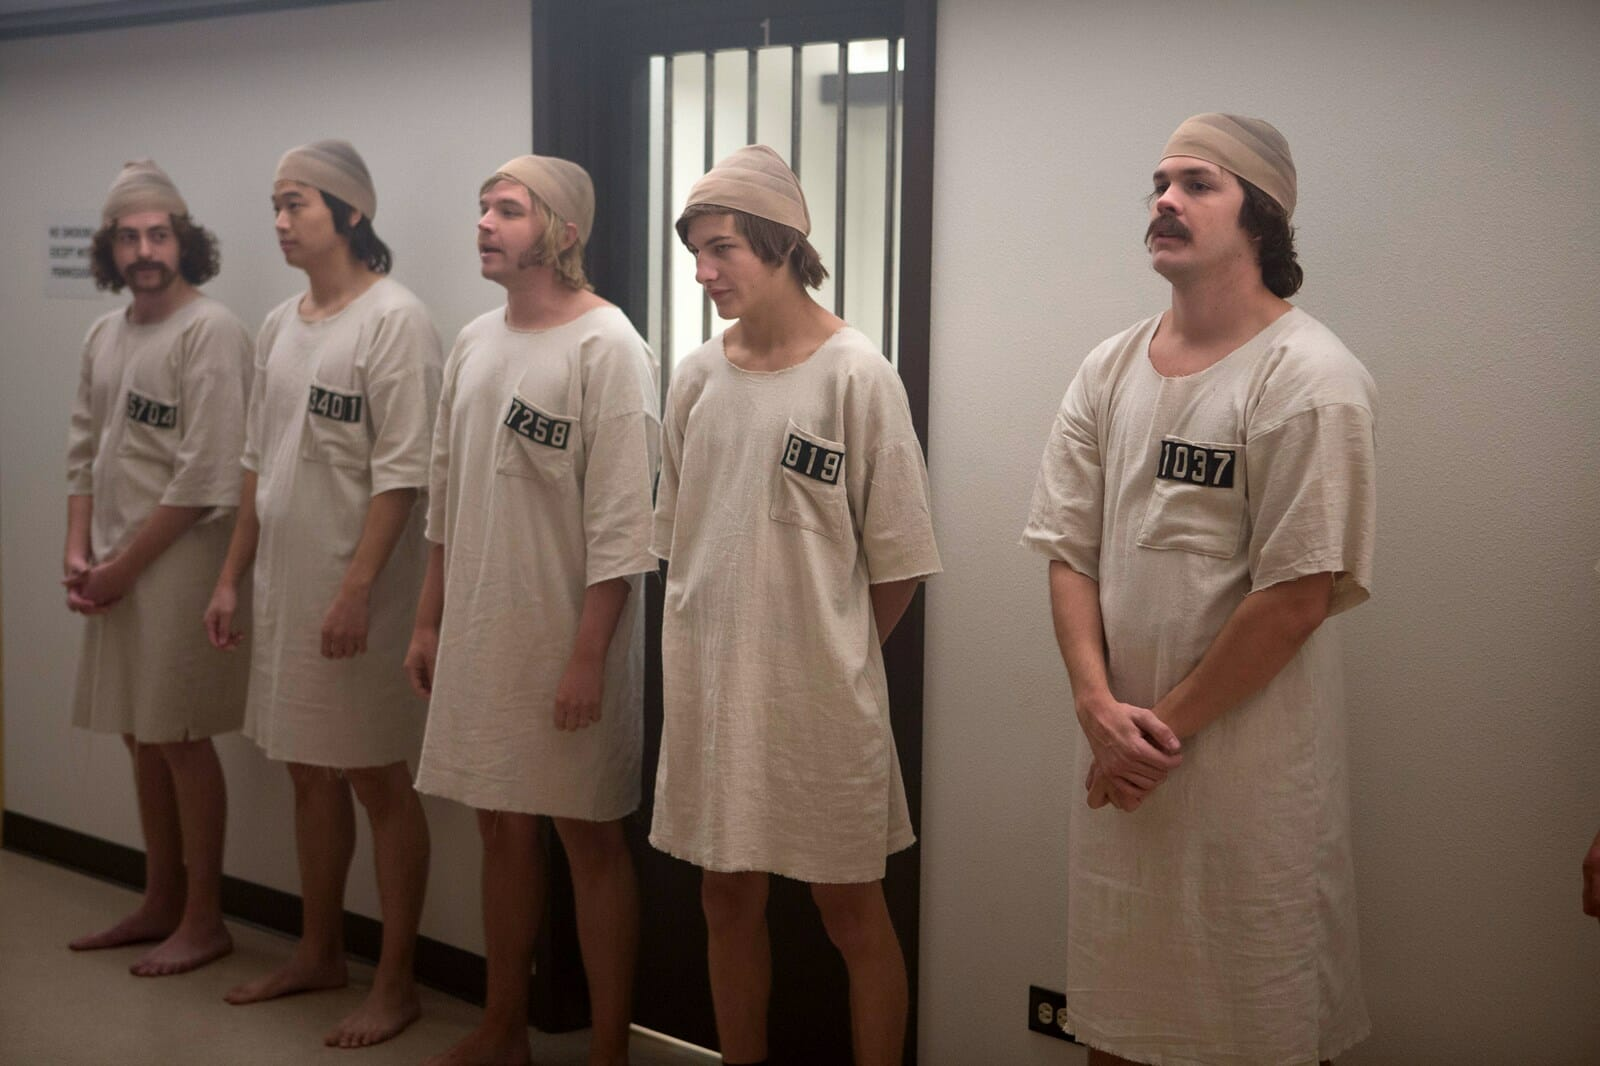 The-Stanford-Prison-Experiment-cast